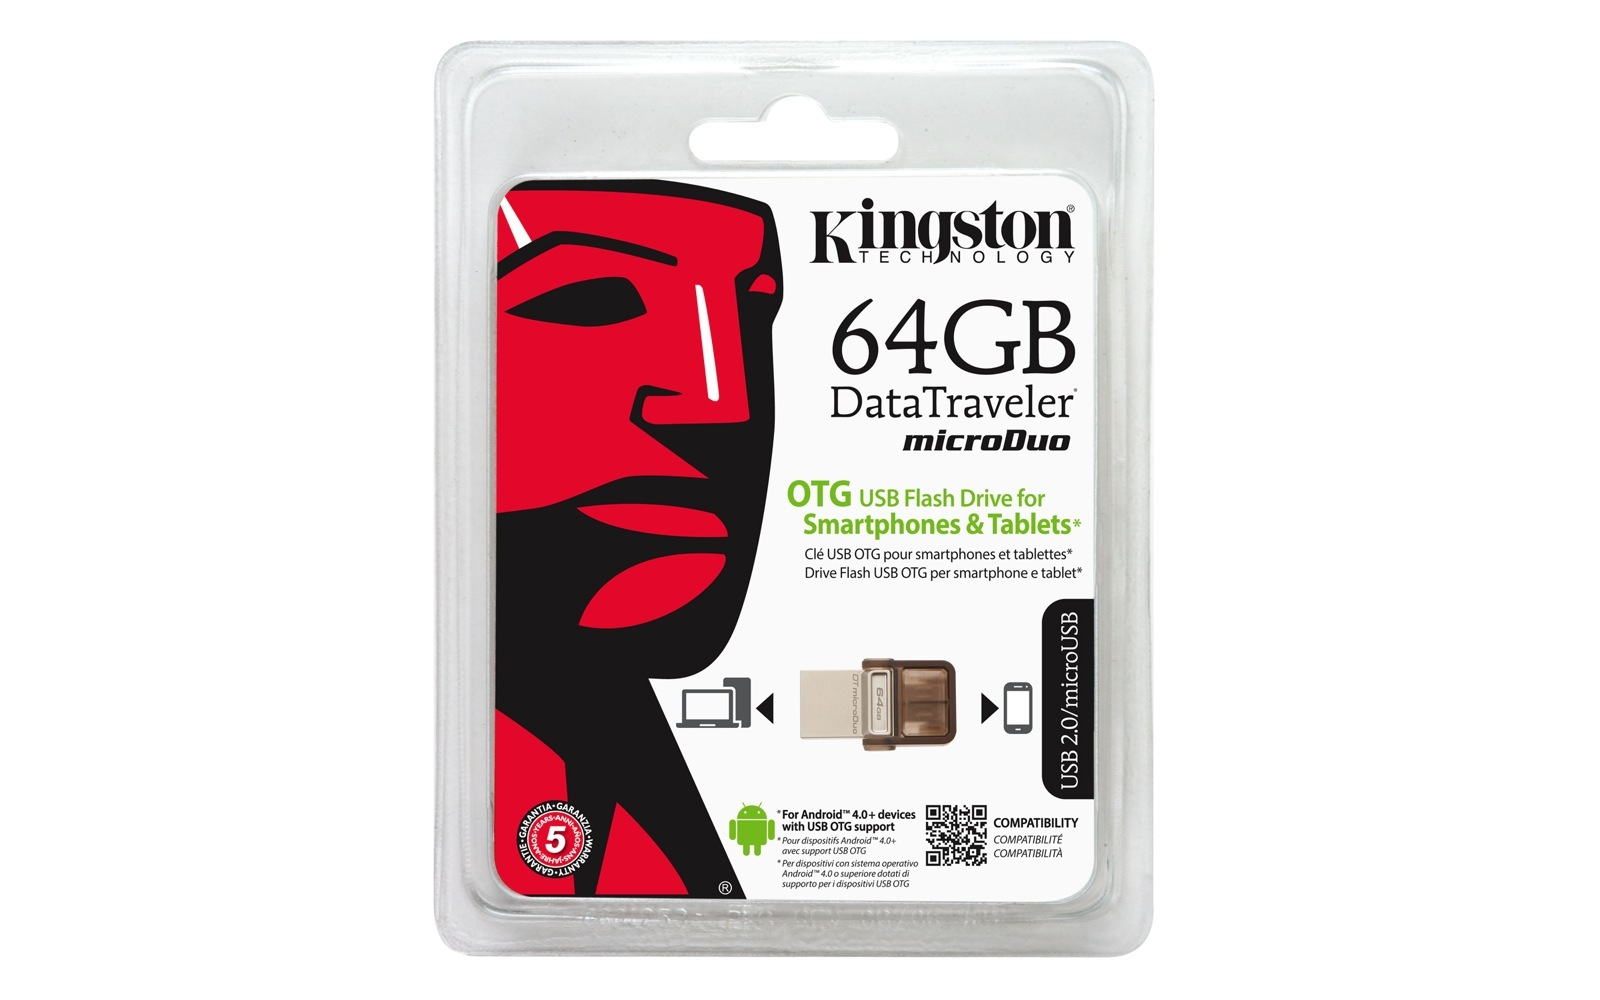 Foto de Kingston microDuo USB (27/27)